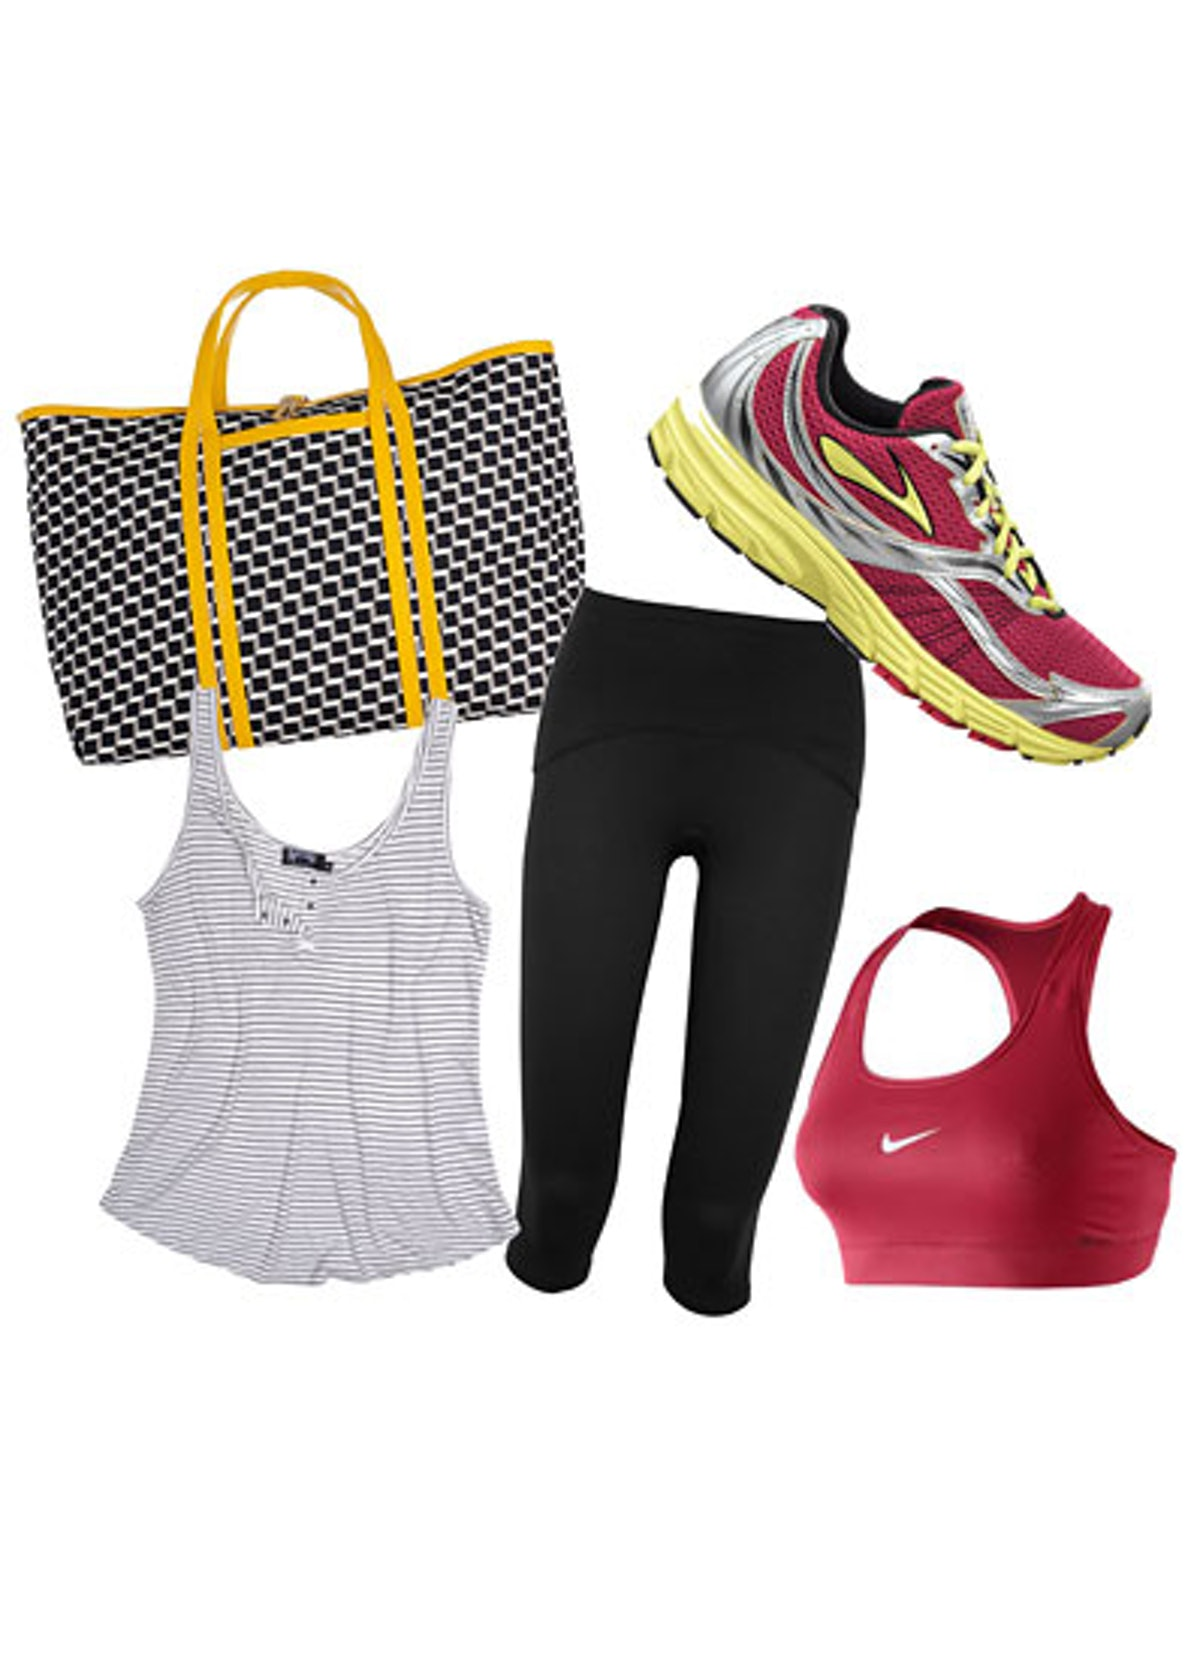 bess-workout-recommendations-04-v.jpg